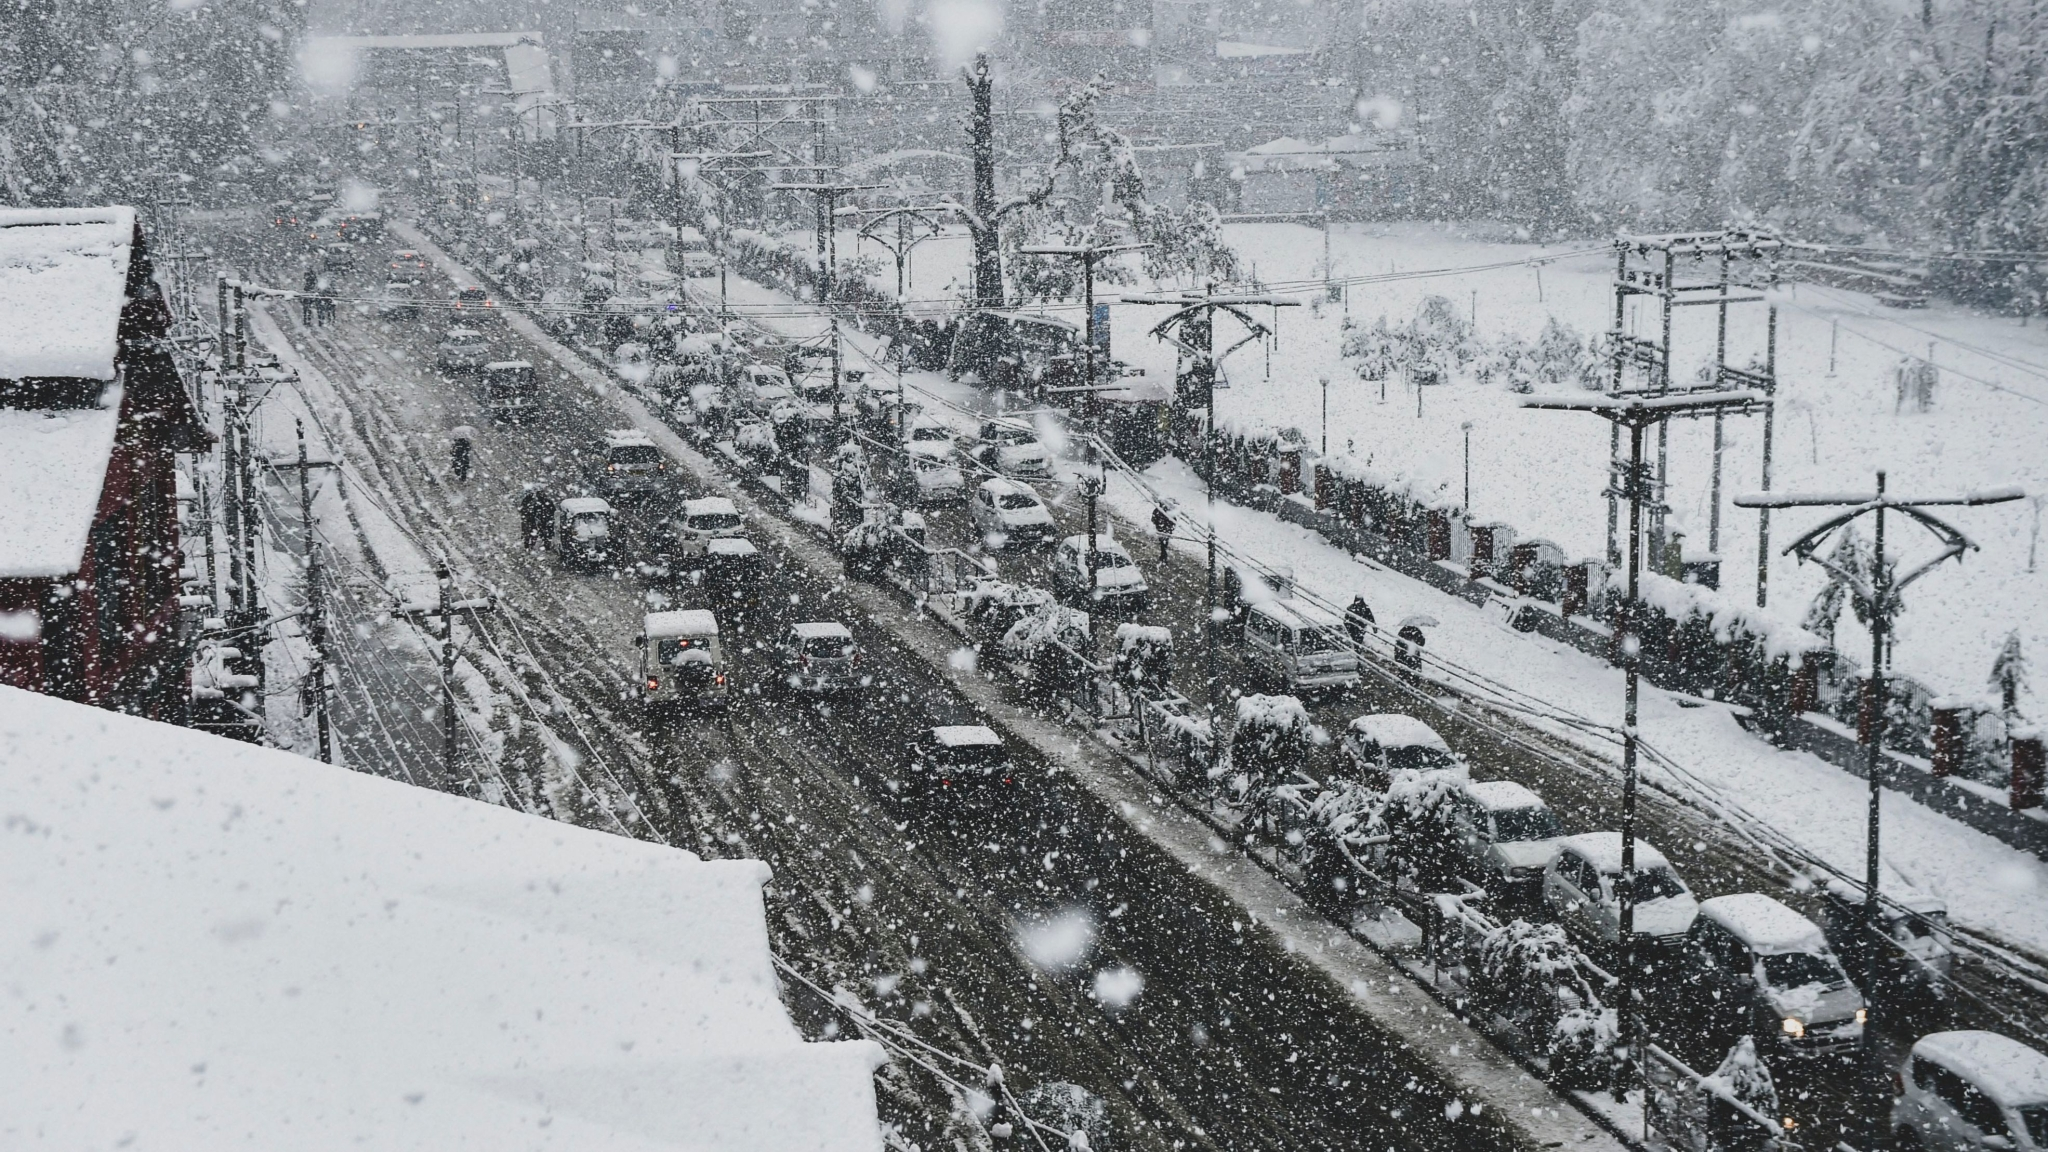 J&K Highway Closed for 2nd Consecutive Day, 4000 Vehicles Stranded